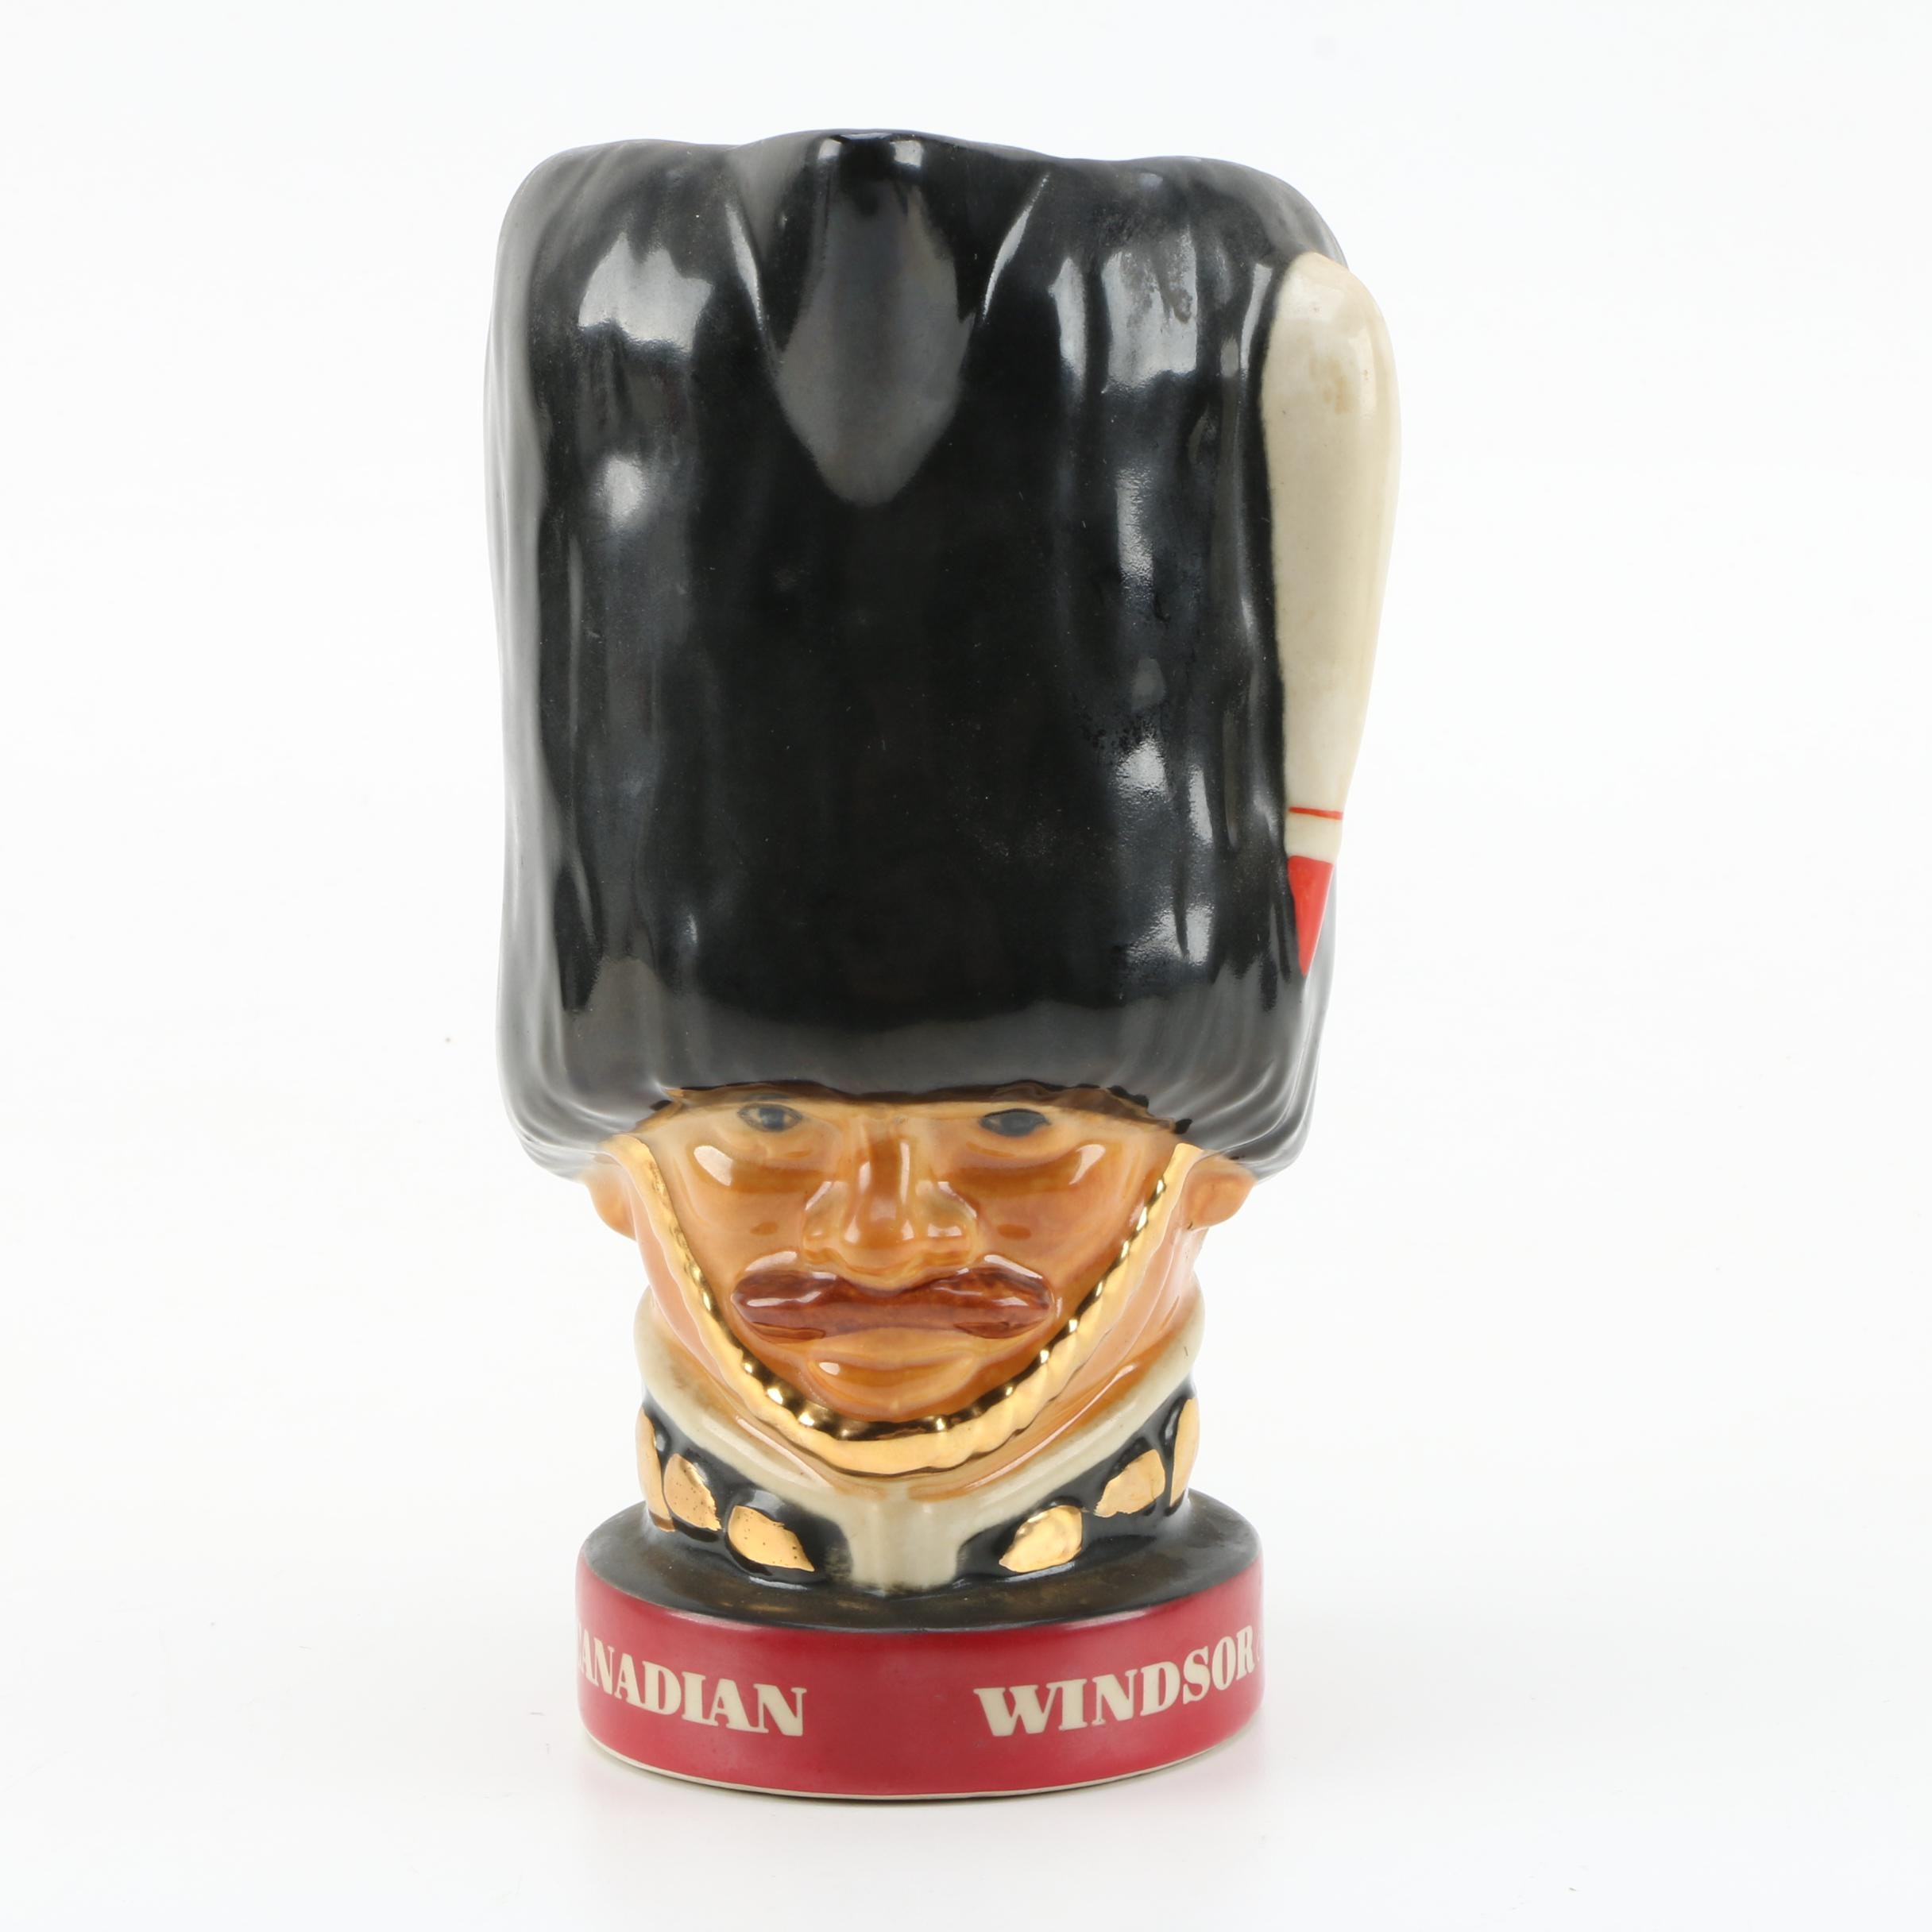 Windsor Canadian Whiskey Pitcher